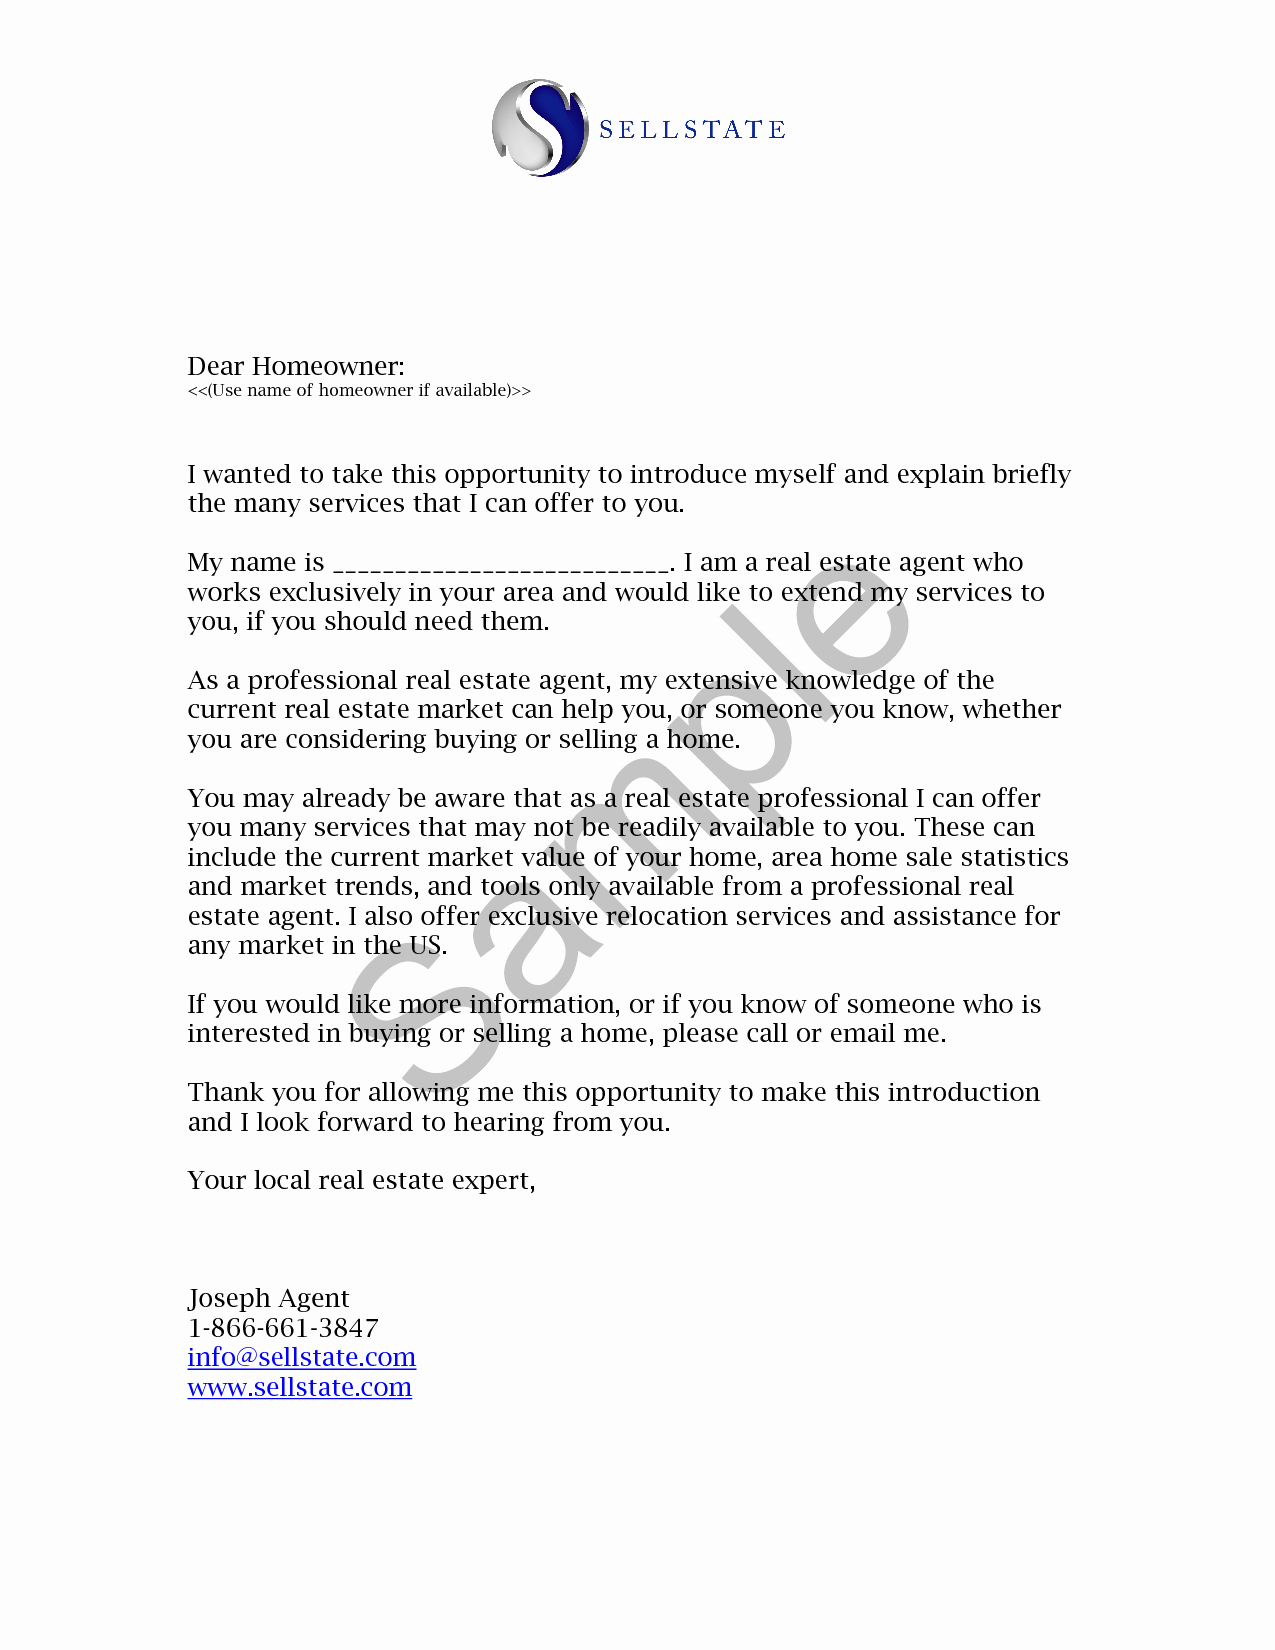 New Client Welcome Letter Financial Advisor Unique Real Estate Letters Of Introduction Introduction Letter